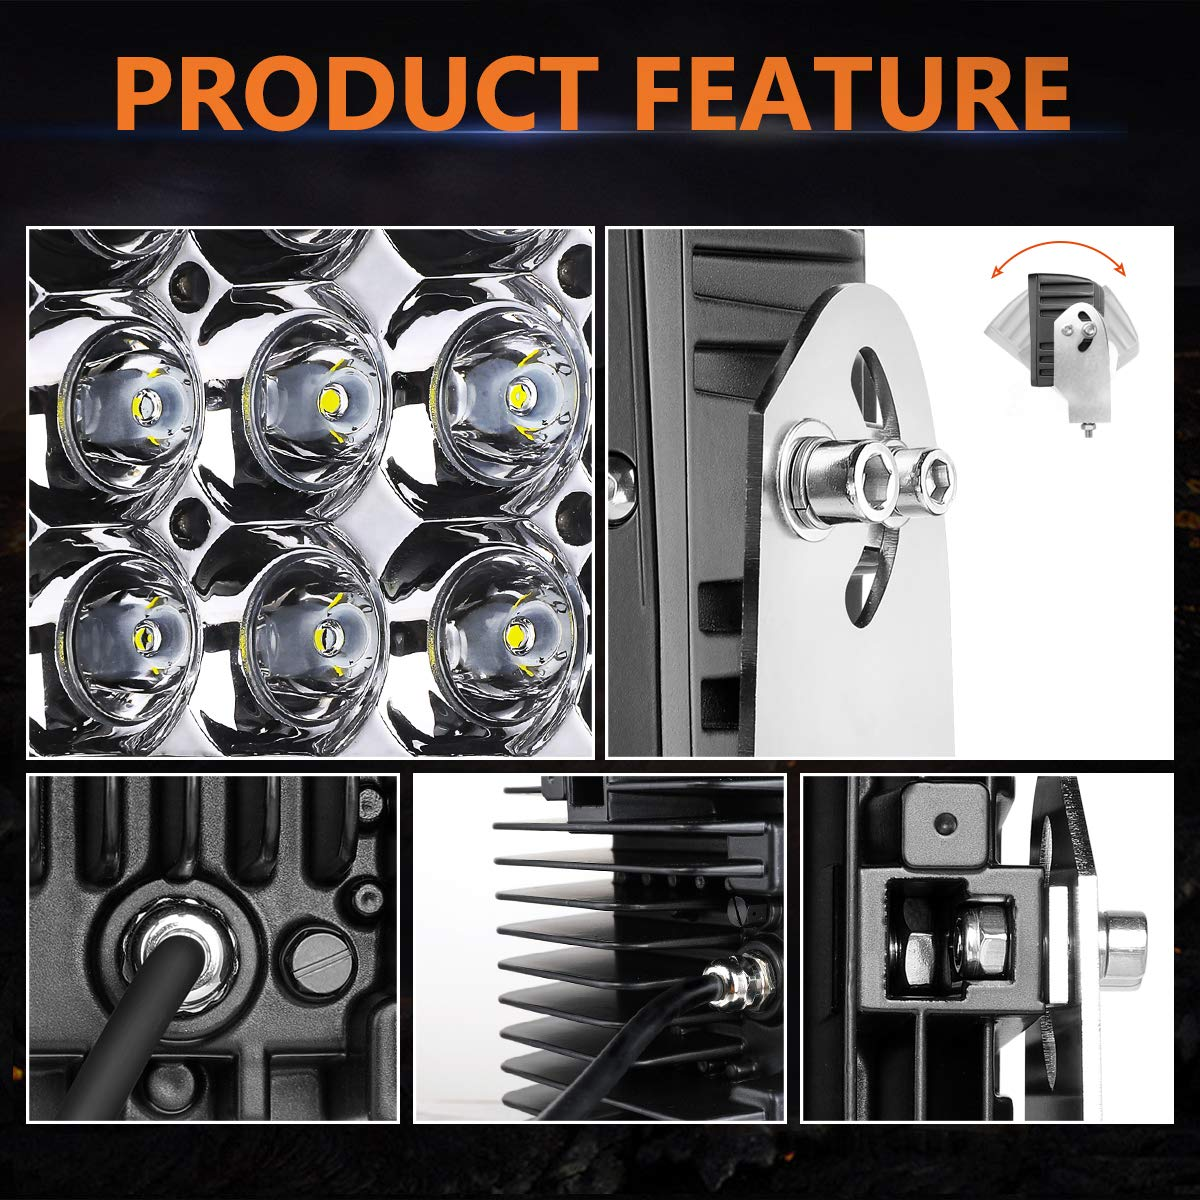 2 Years Warranty Dual Side Shooter LED Lights Swatow Industries 2PCS 240W Osram 5 Inch LED Pod Lights Quad Row LED Fog Lights Off Road LED Cube Lights for Truck Tractor SUV ATV UTV Motorcycle Boat